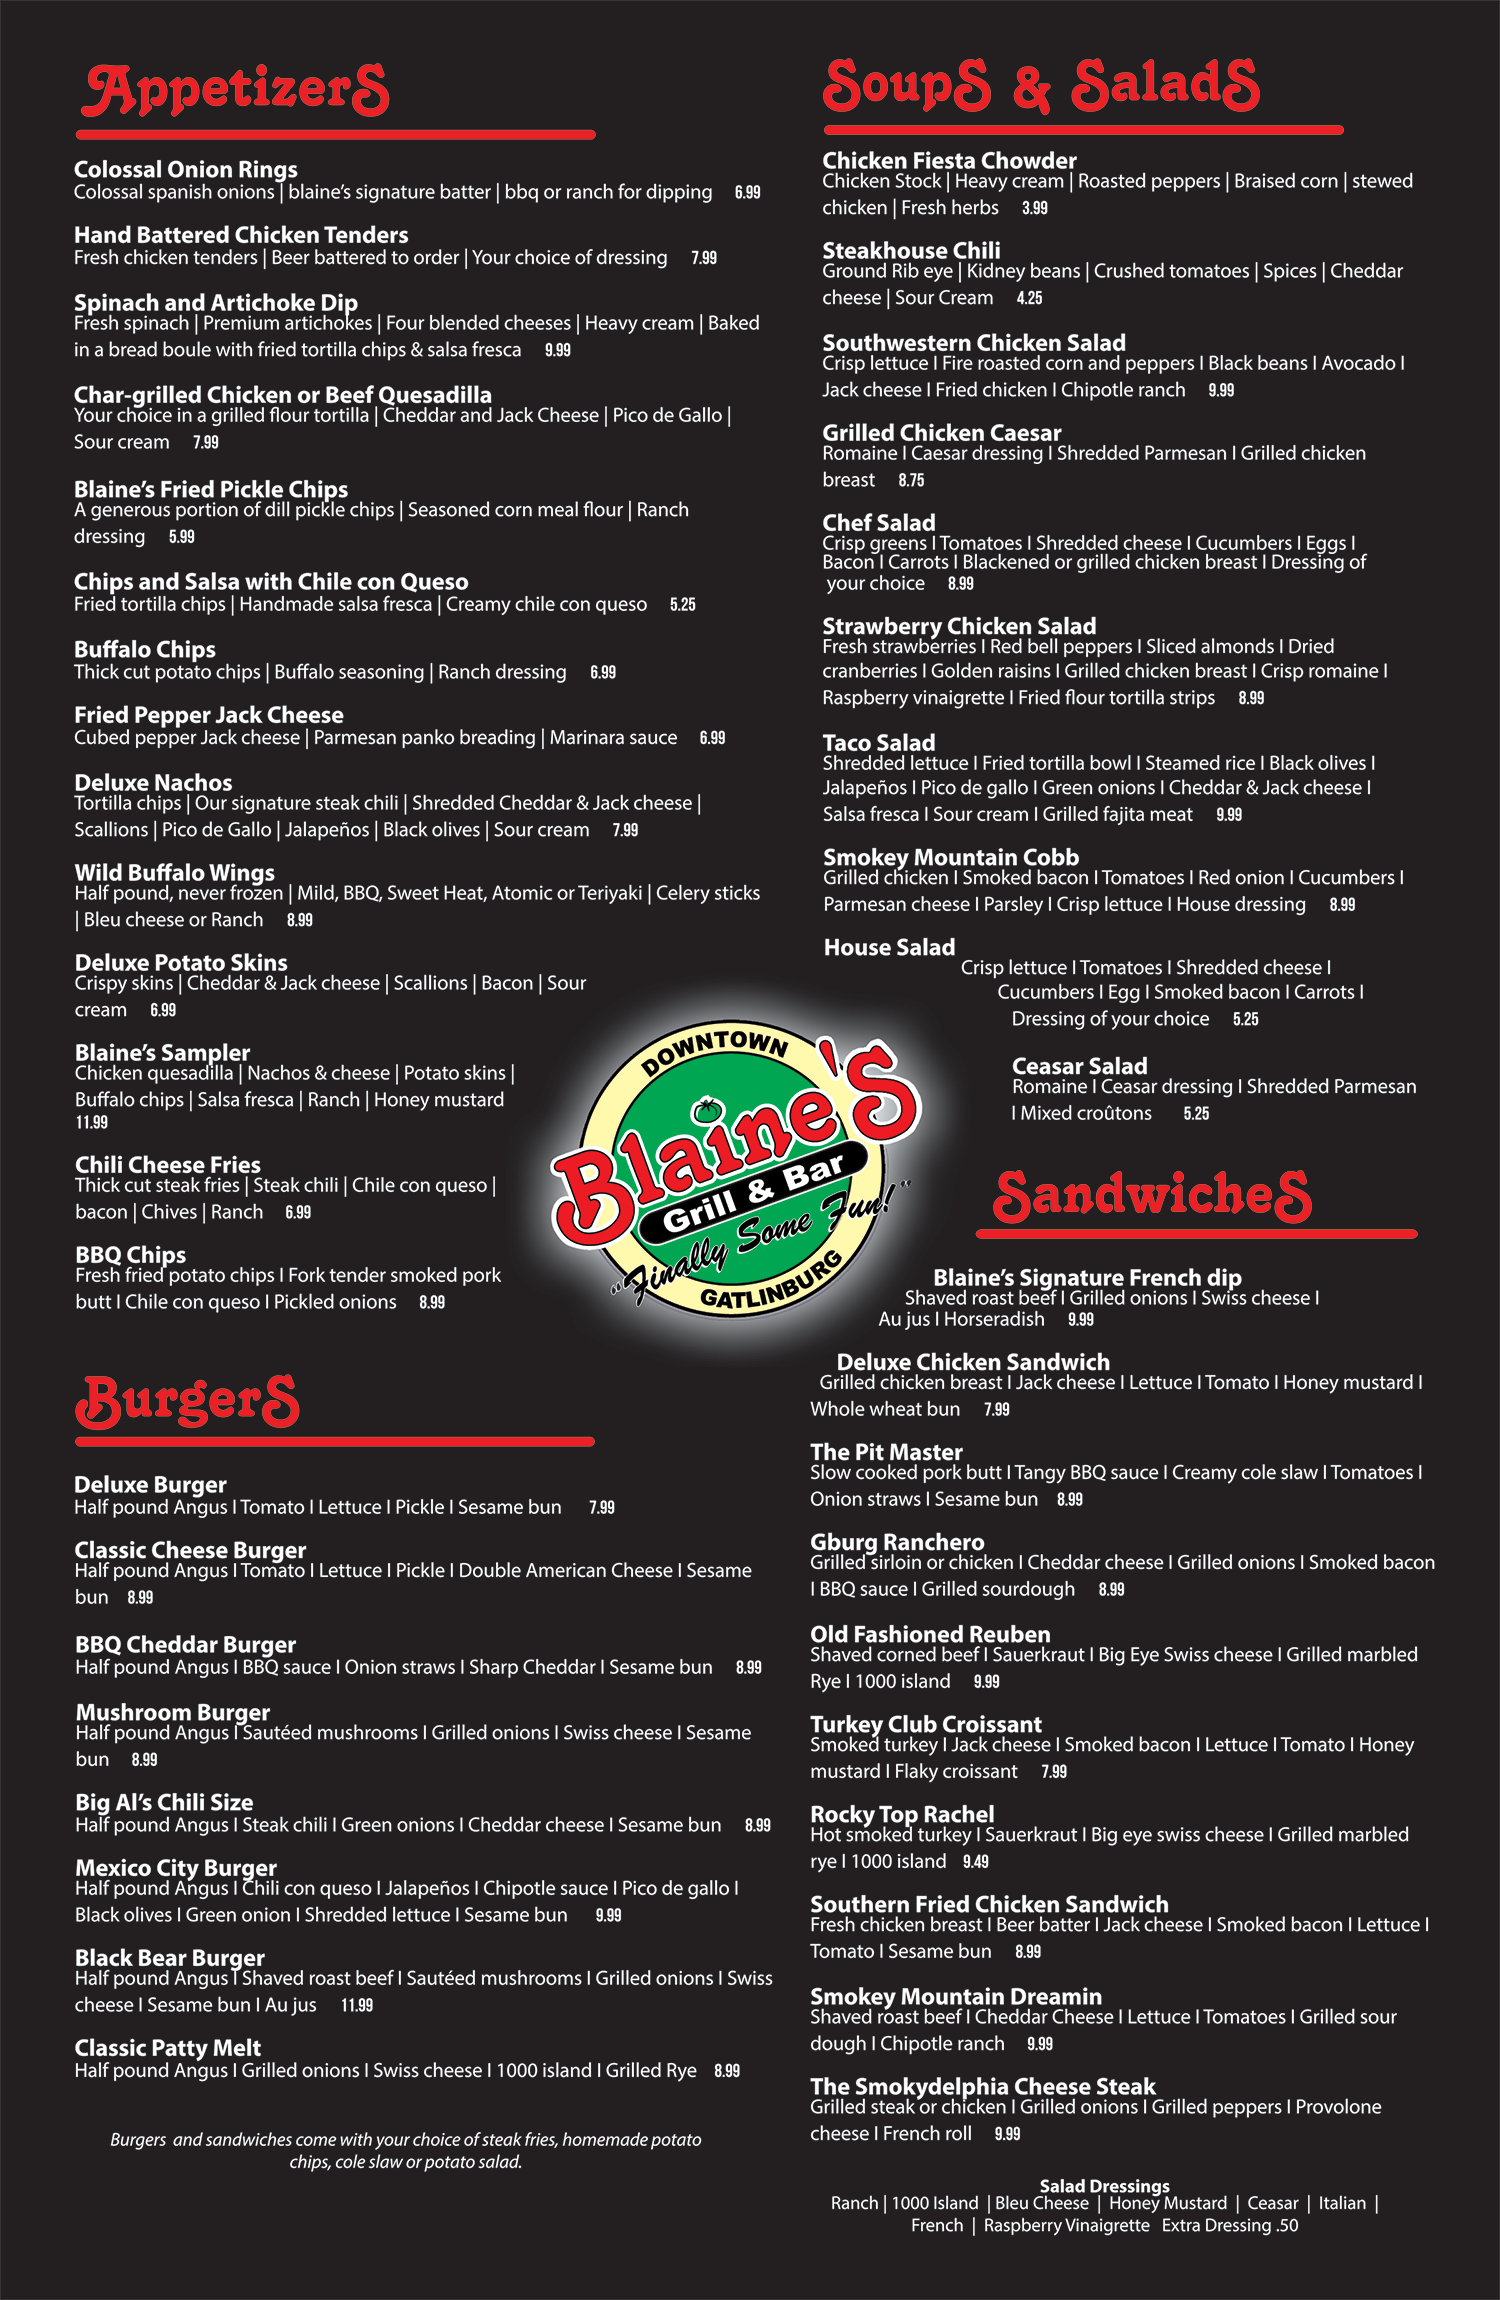 Blaine's Bar & Grill menu